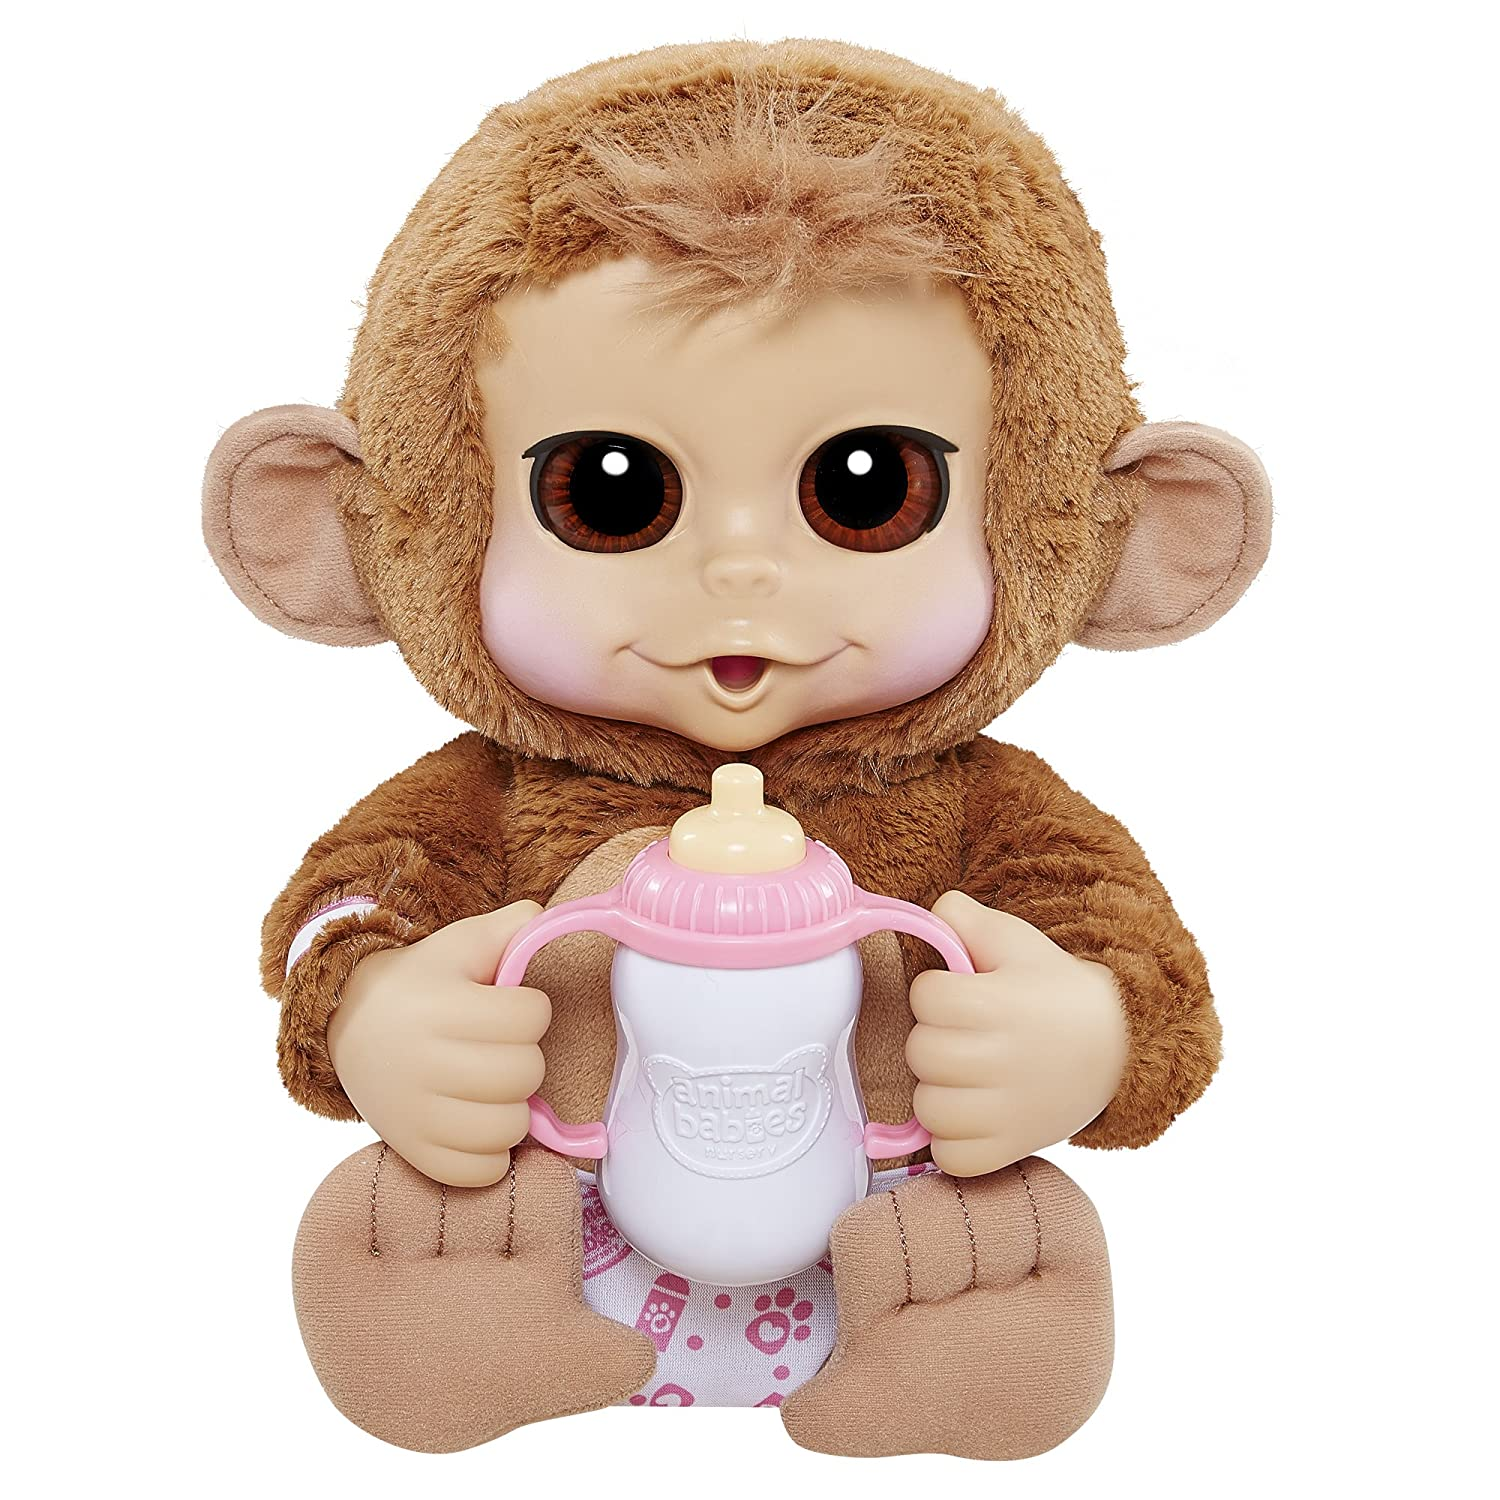 Amazon Animal Babies Deluxe Baby Chimpanzee Plush Toys & Games